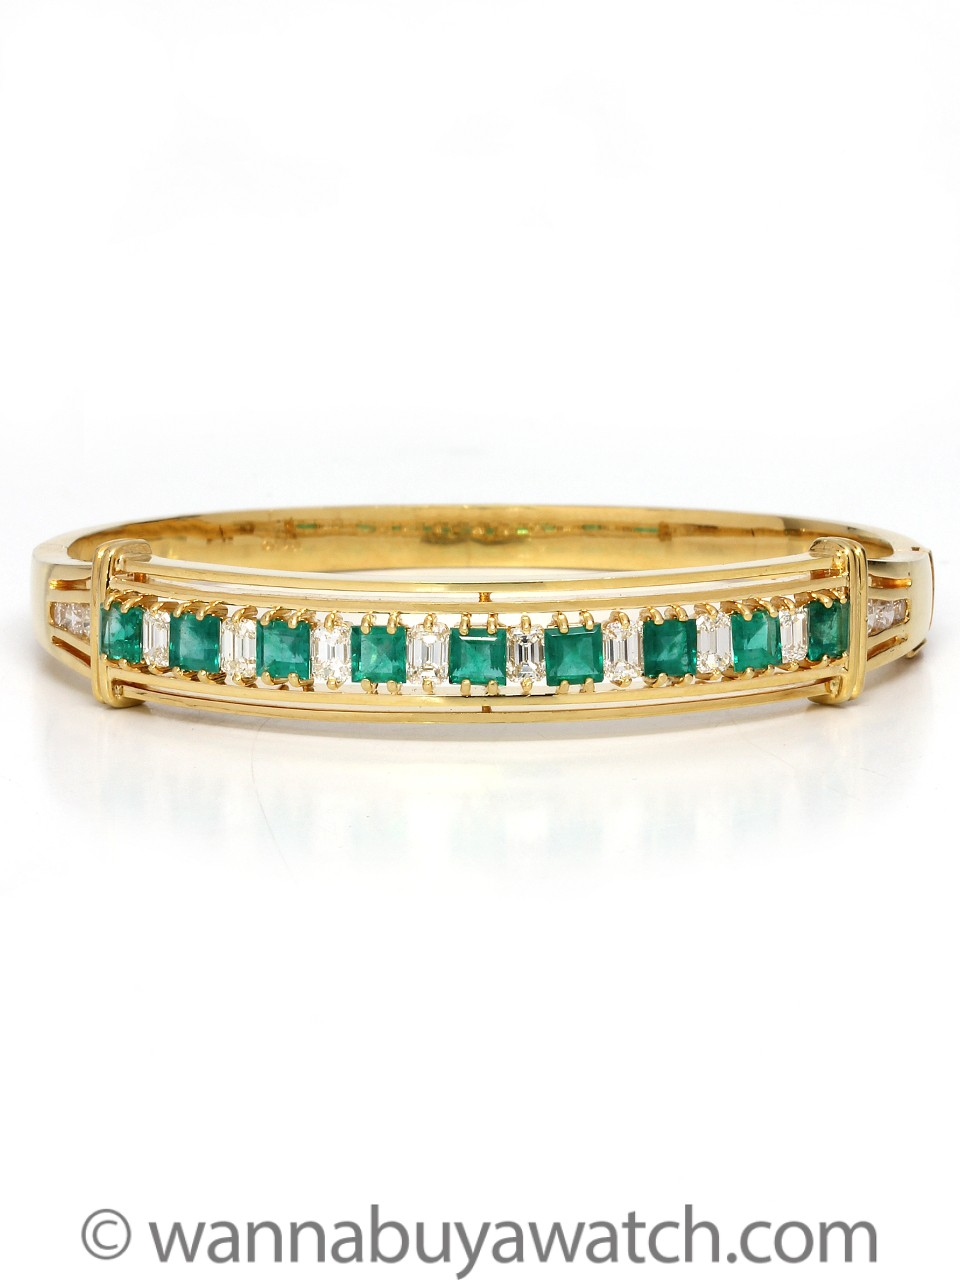 18K Yellow Gold with Emeralds & Diamonds